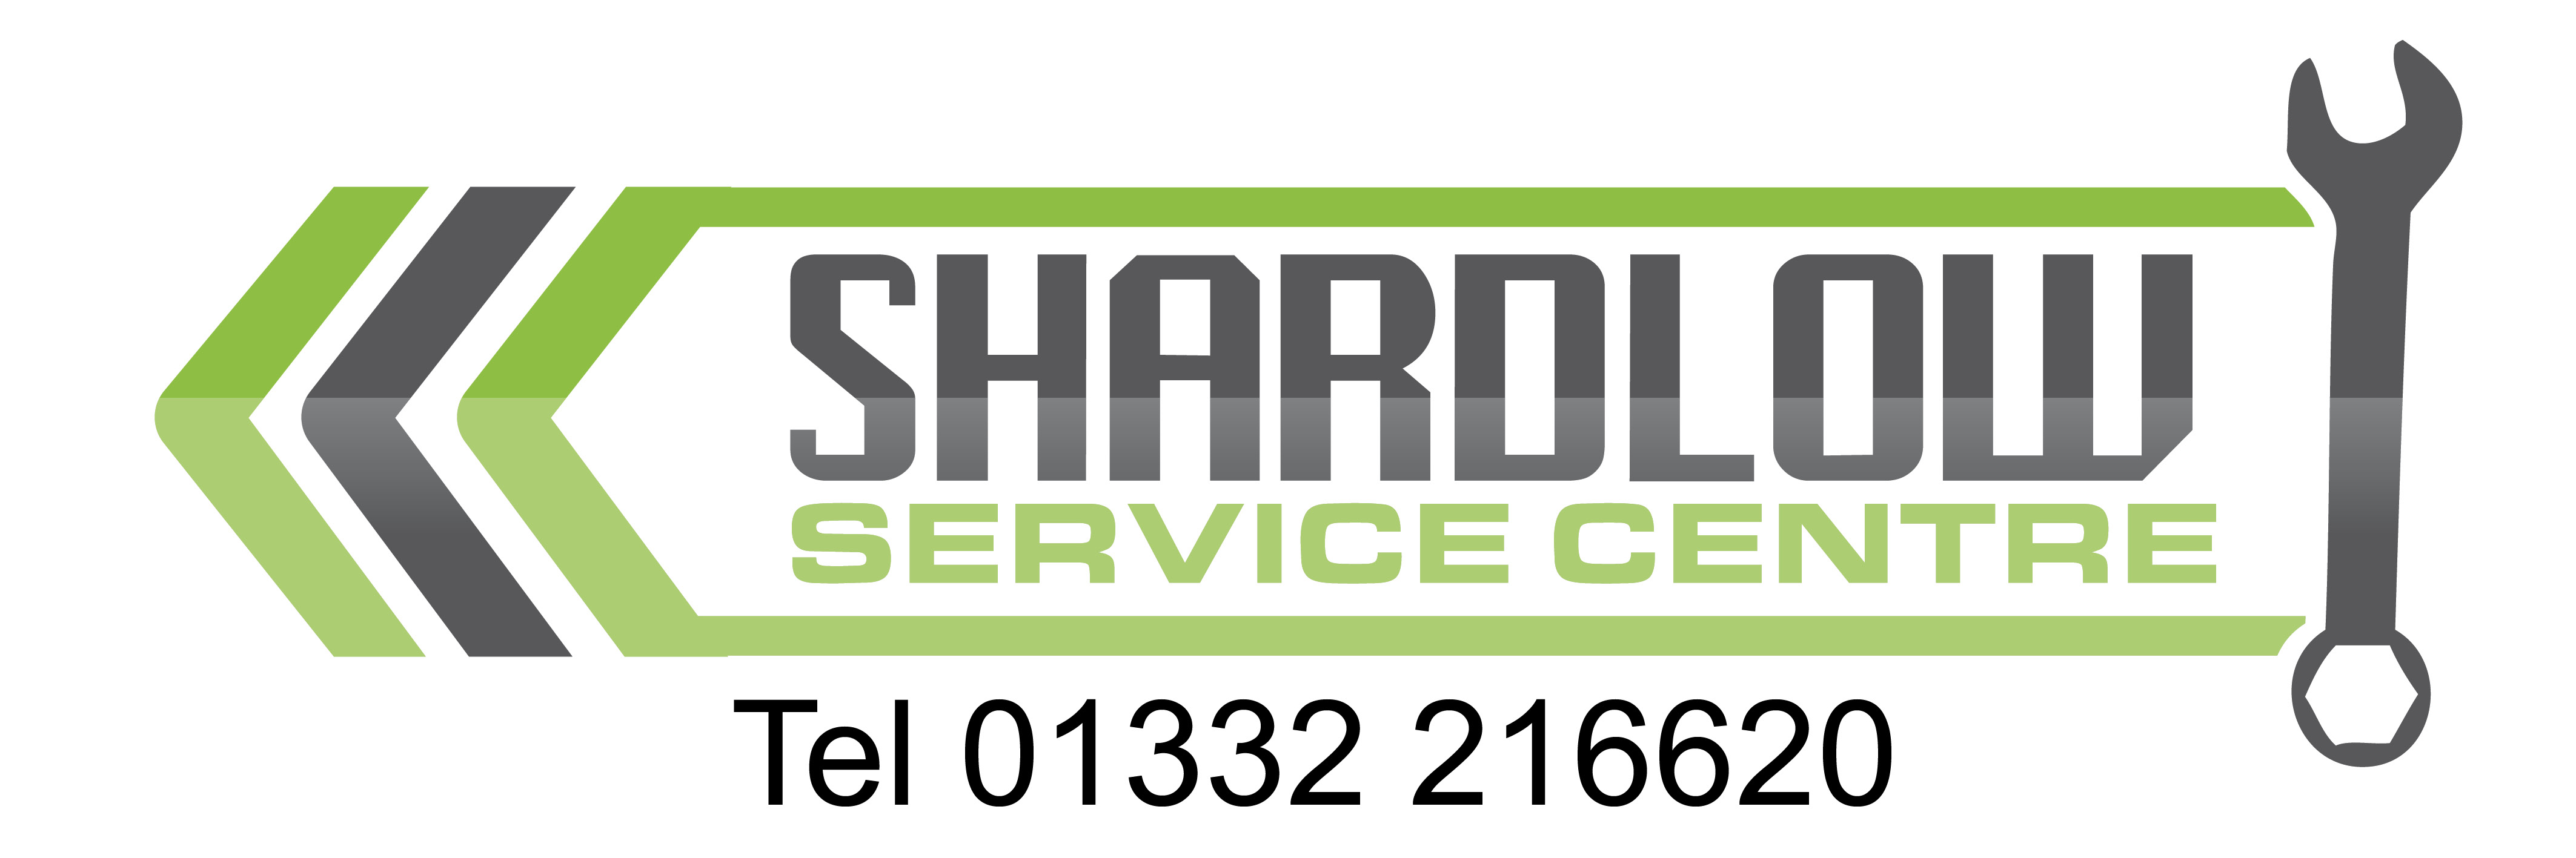 Shardlow Service Centre Logo